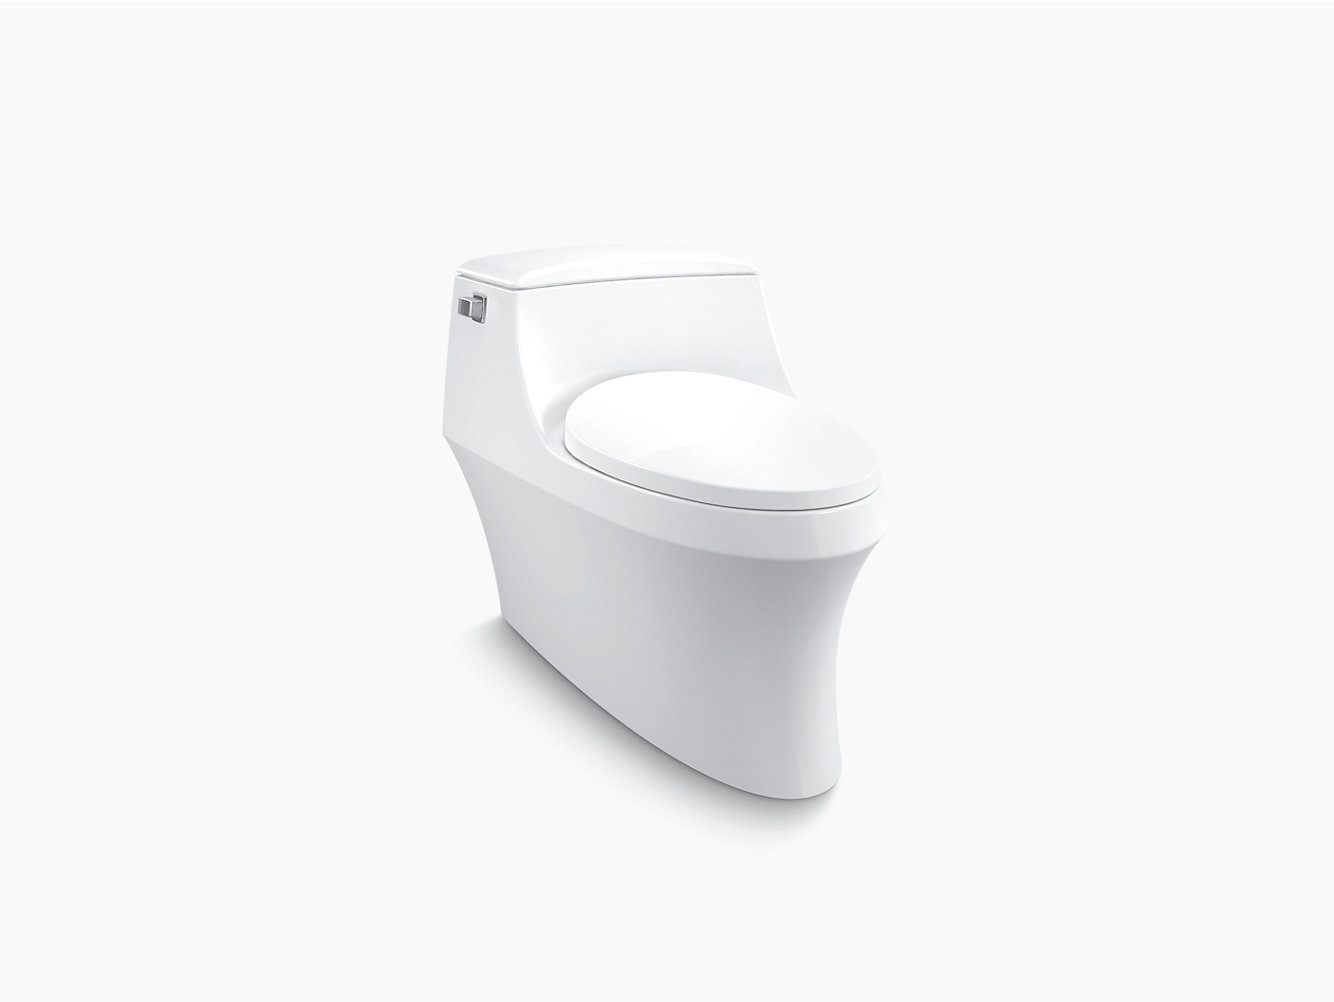 San Raphael Grande Skirted One-piece 4 8L Toilet with Class